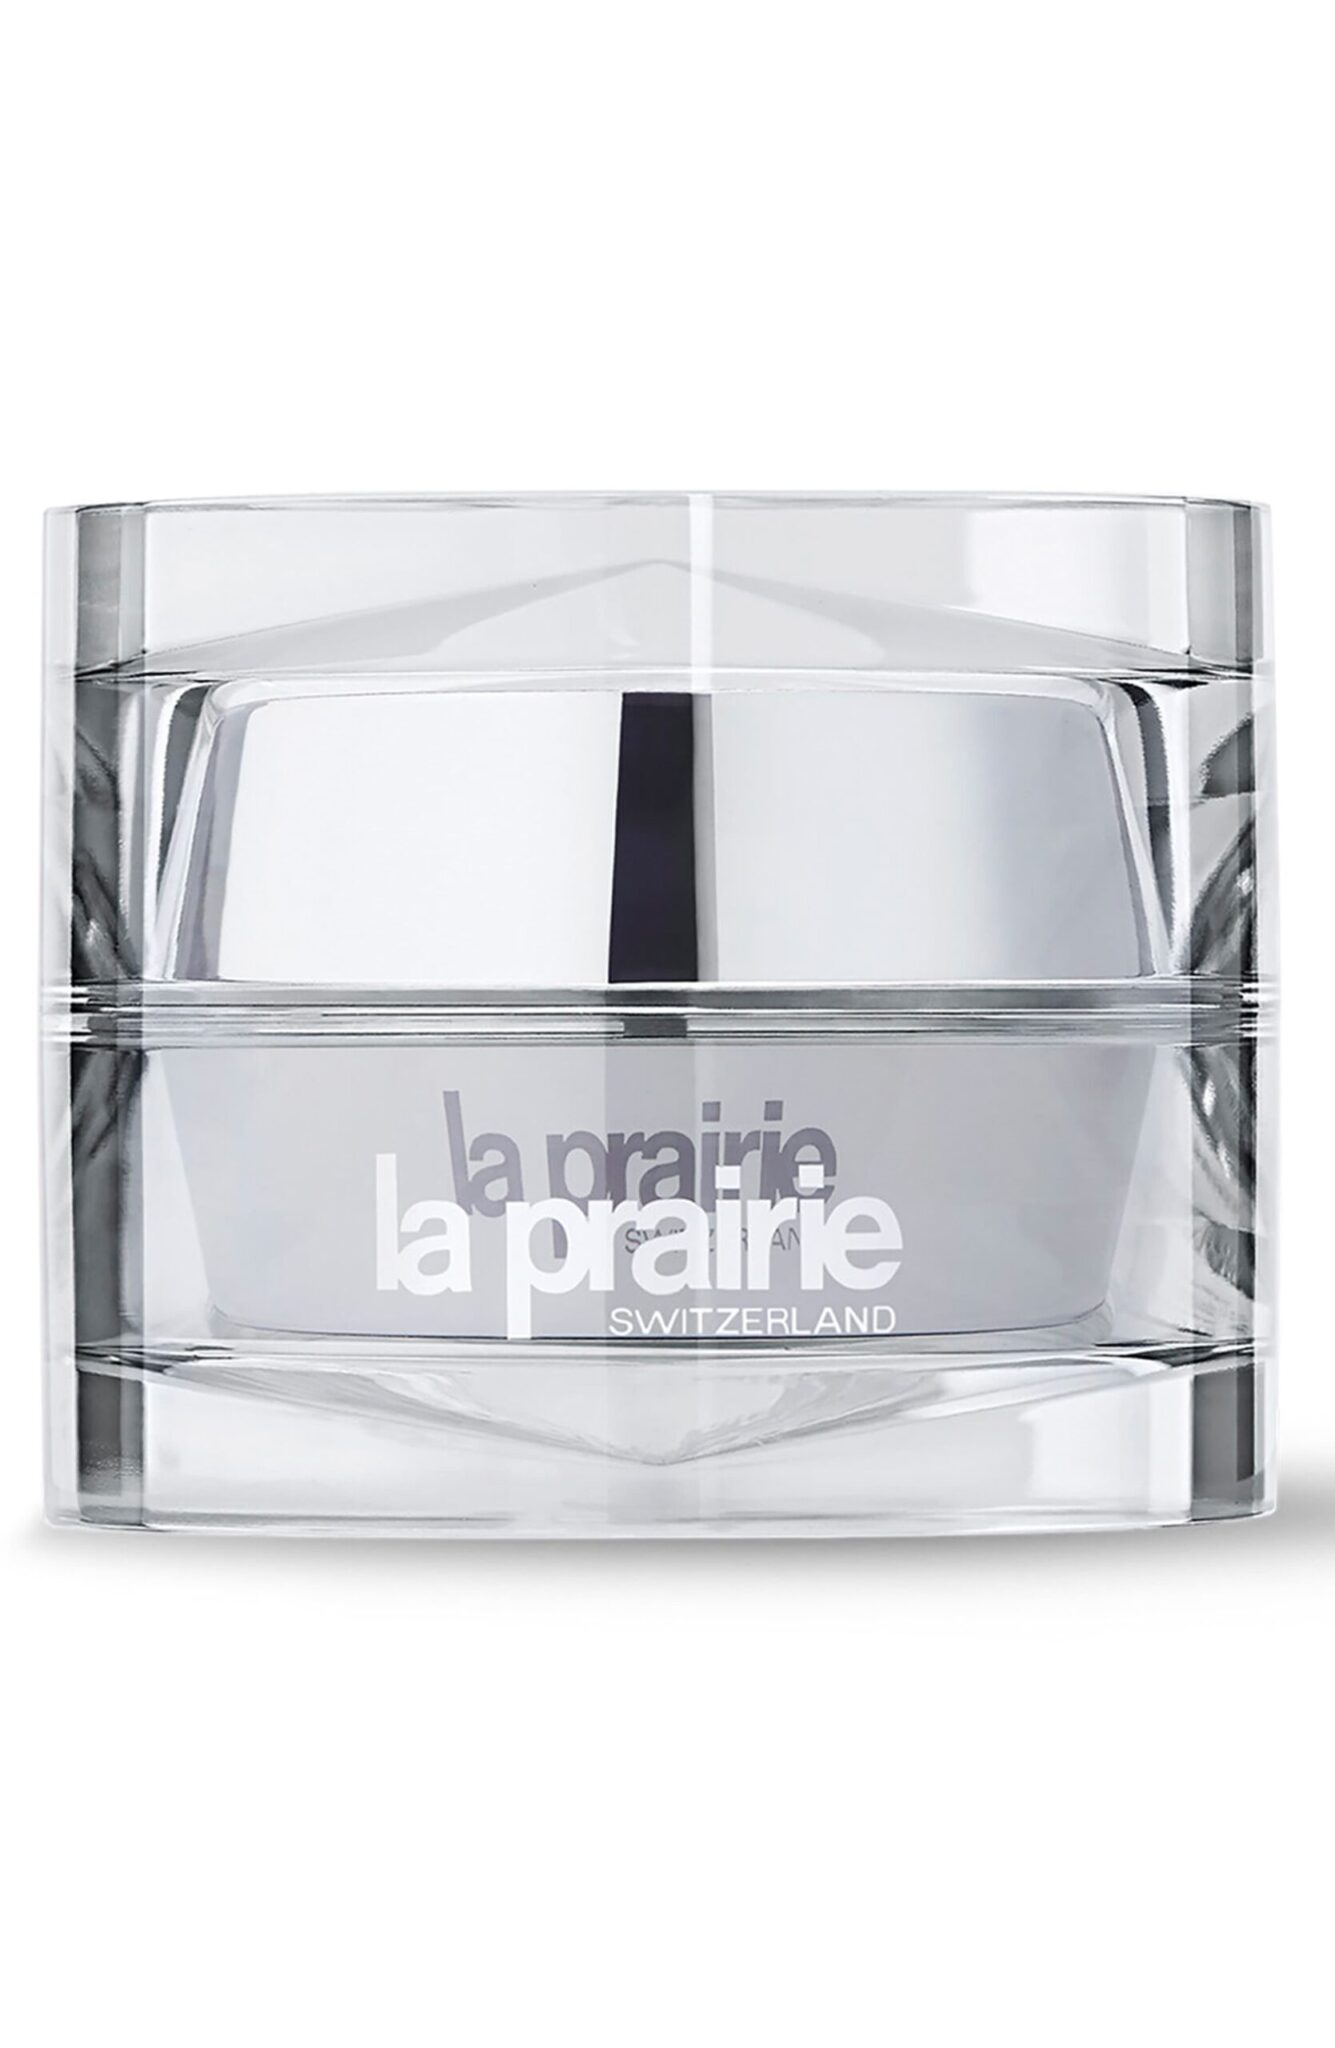 La Prairie Platinum Rare Cellular Eye Cream